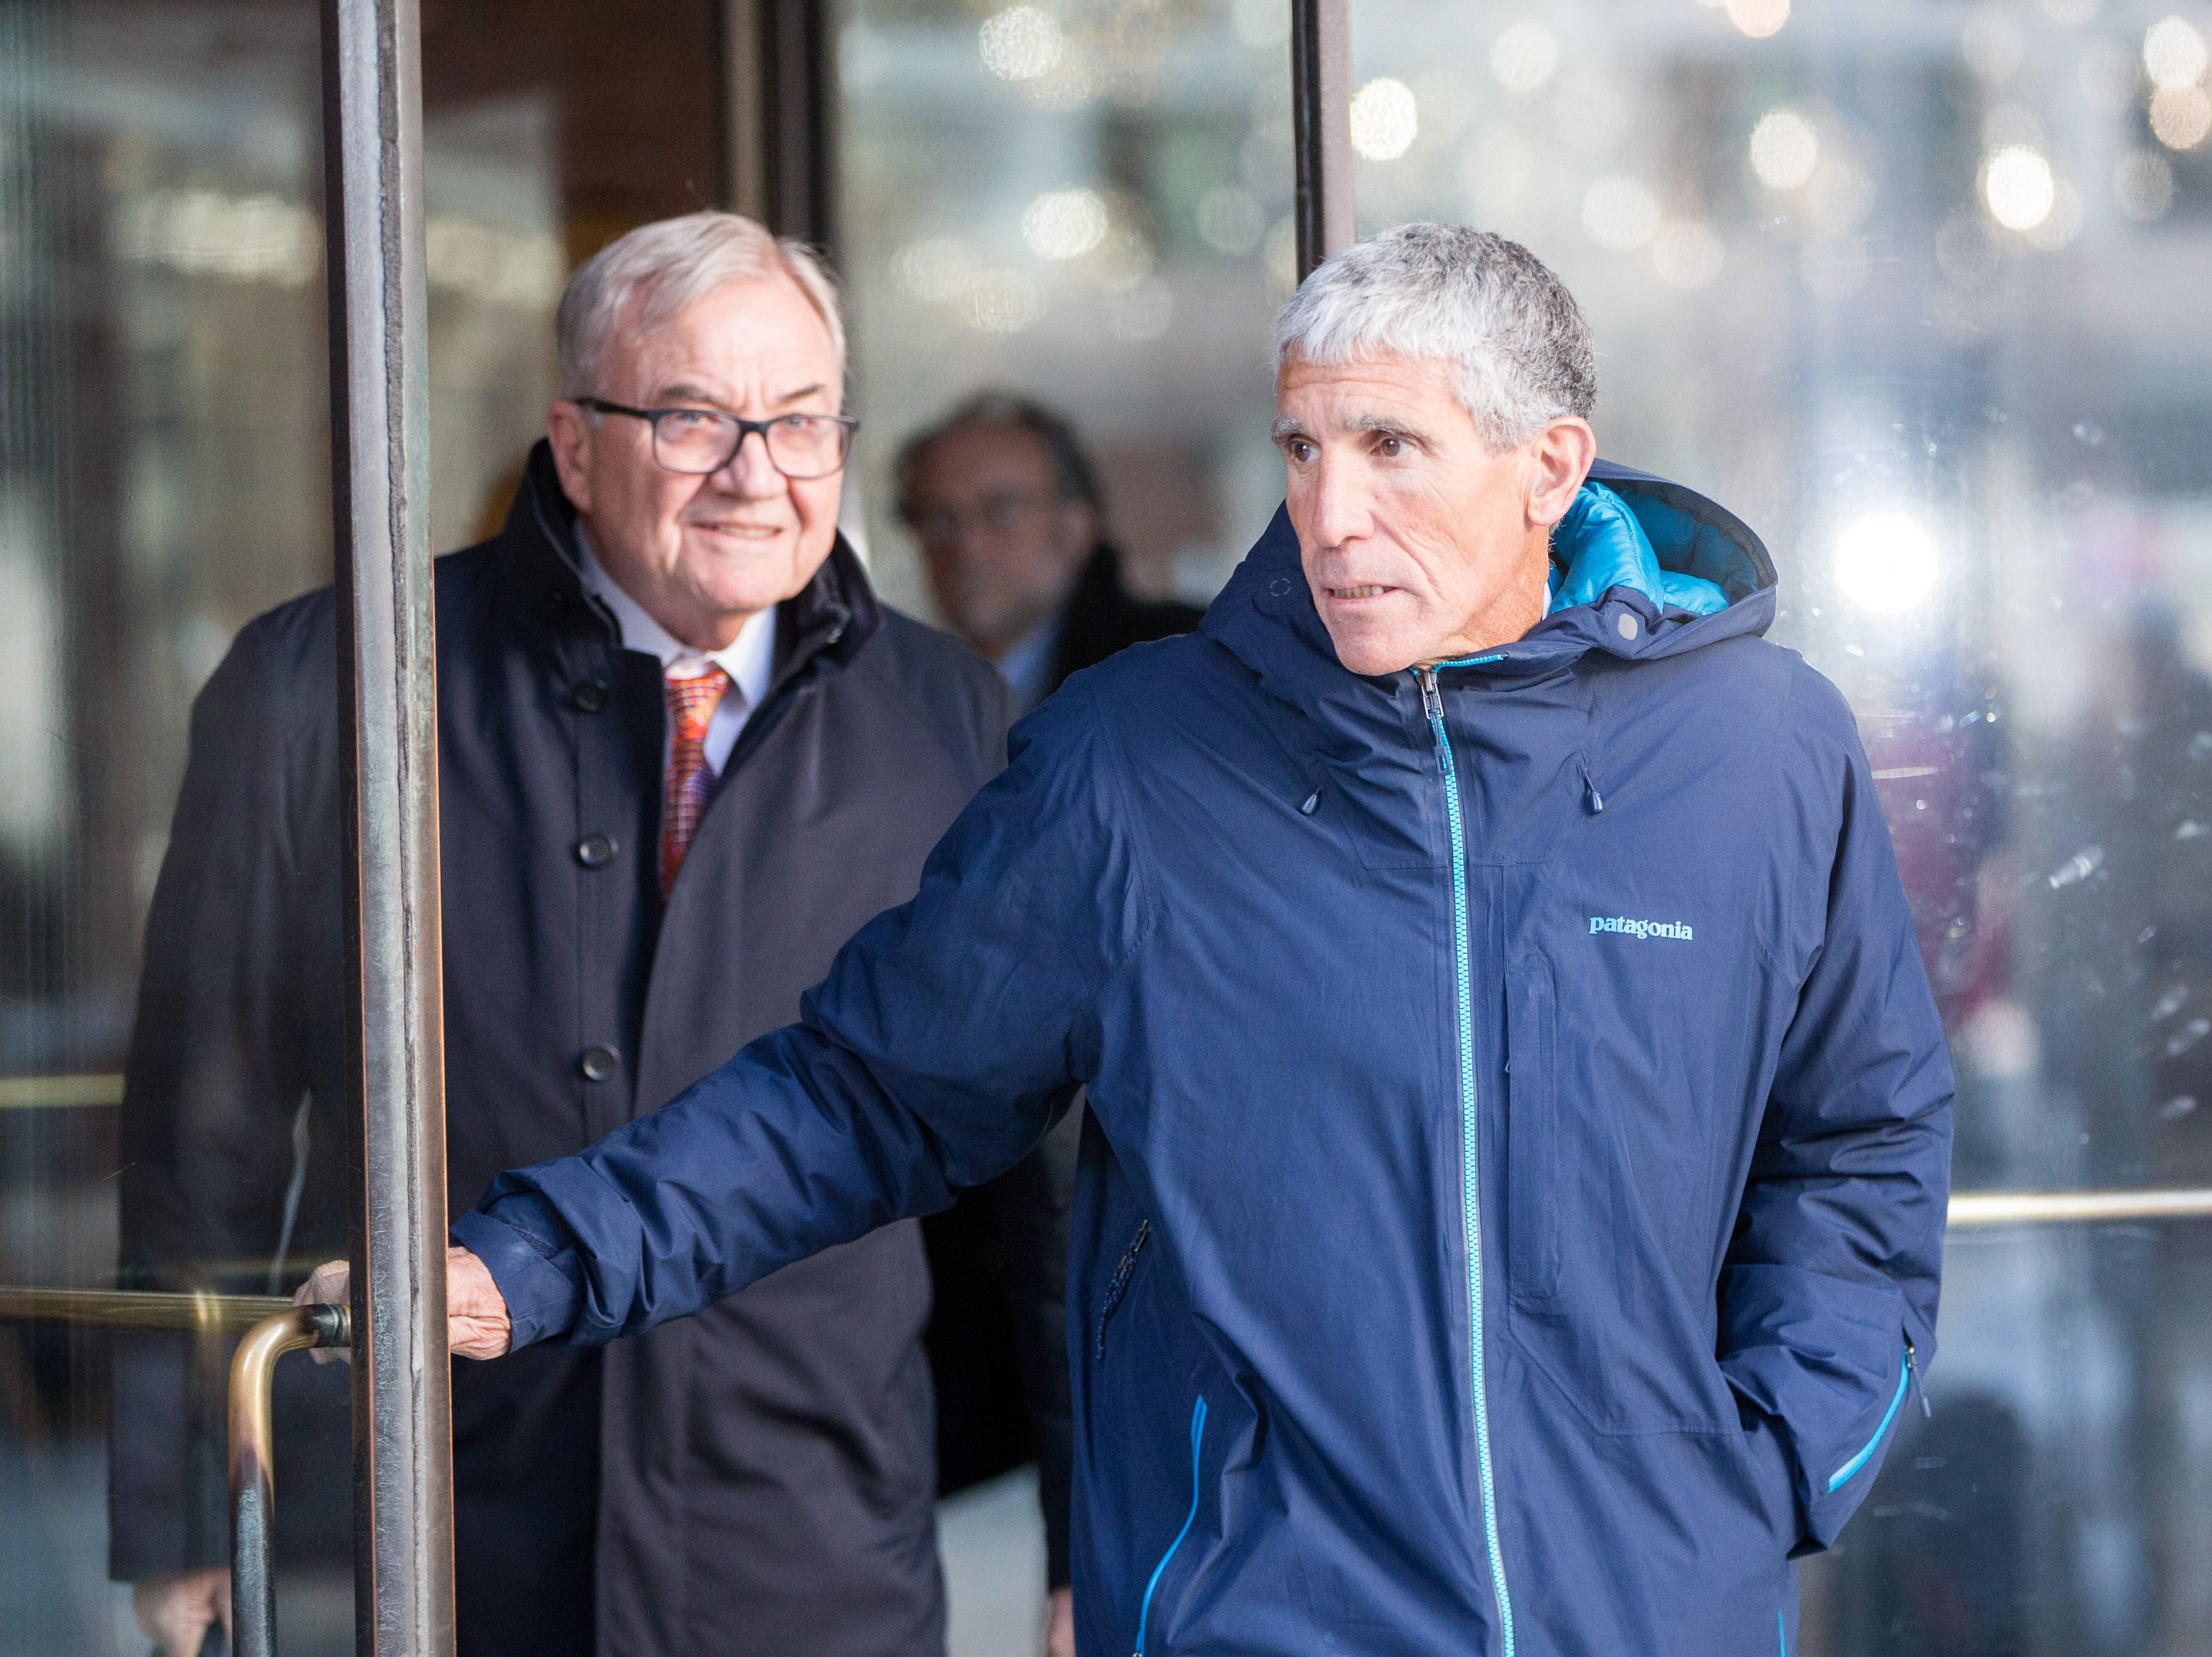 """William """"Rick"""" Singer leaves Boston Federal Court after being charged with racketeering conspiracy, money laundering conspiracy, conspiracy to defraud the United States, and obstruction of justice on March 12, 2019 in Boston. Singer is among several charged in alleged college admissions scam."""